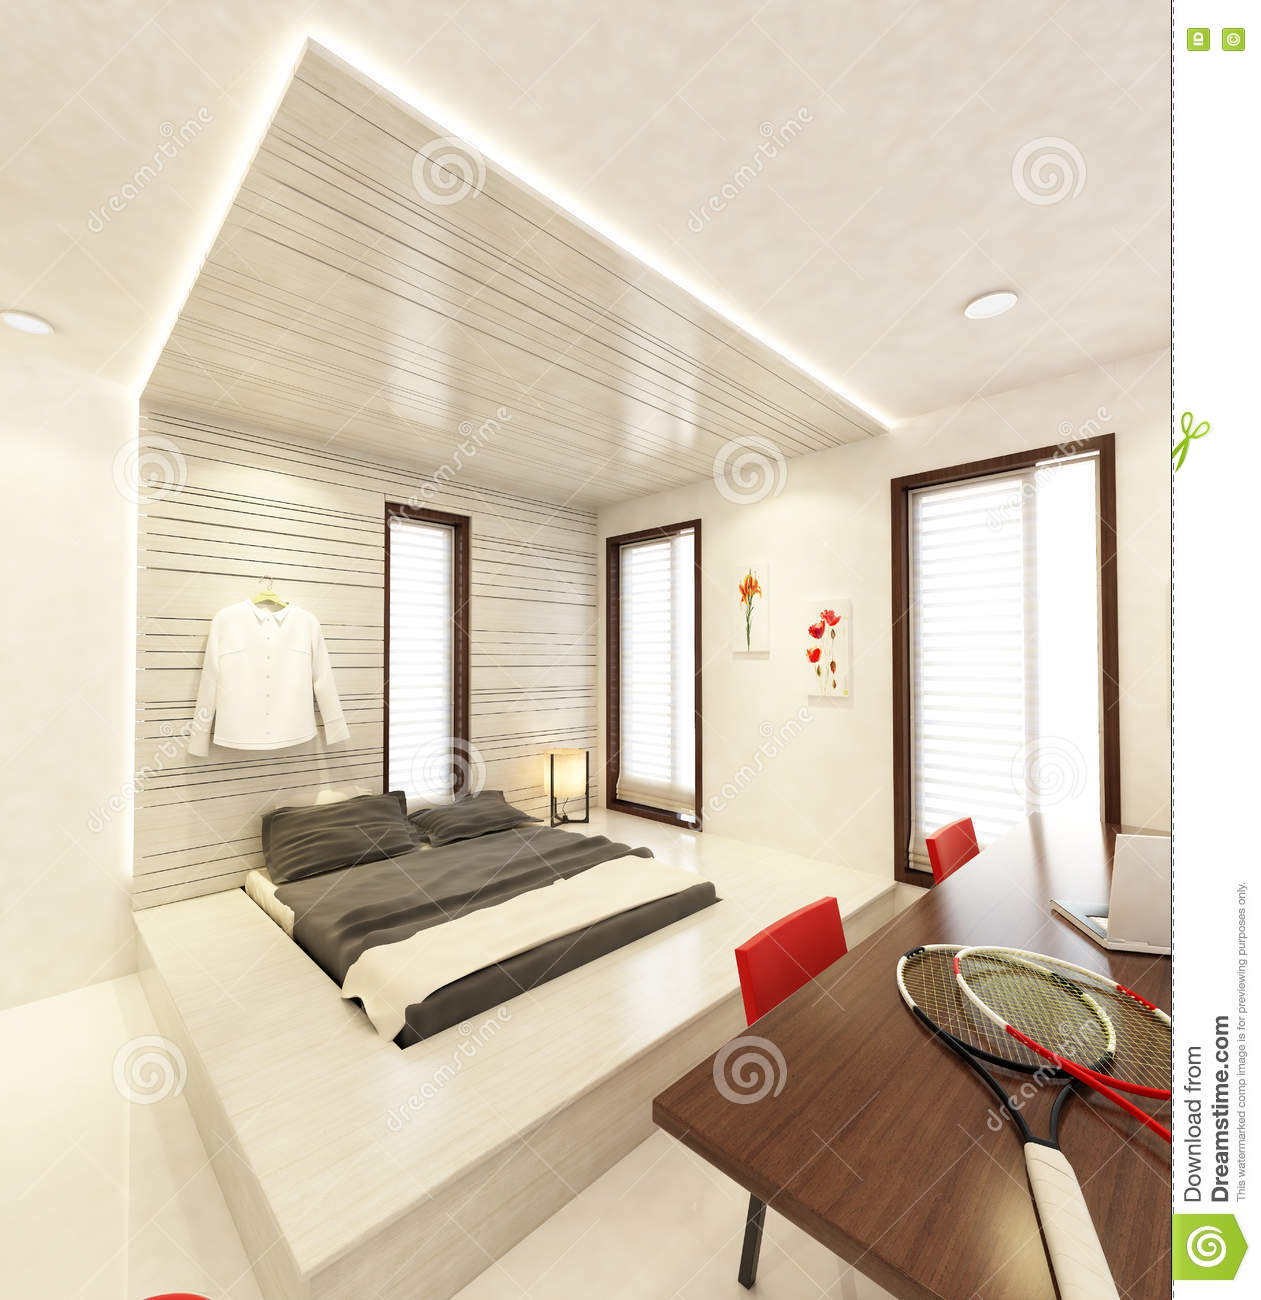 BED STUDY ROOM 3D Stock Illustration